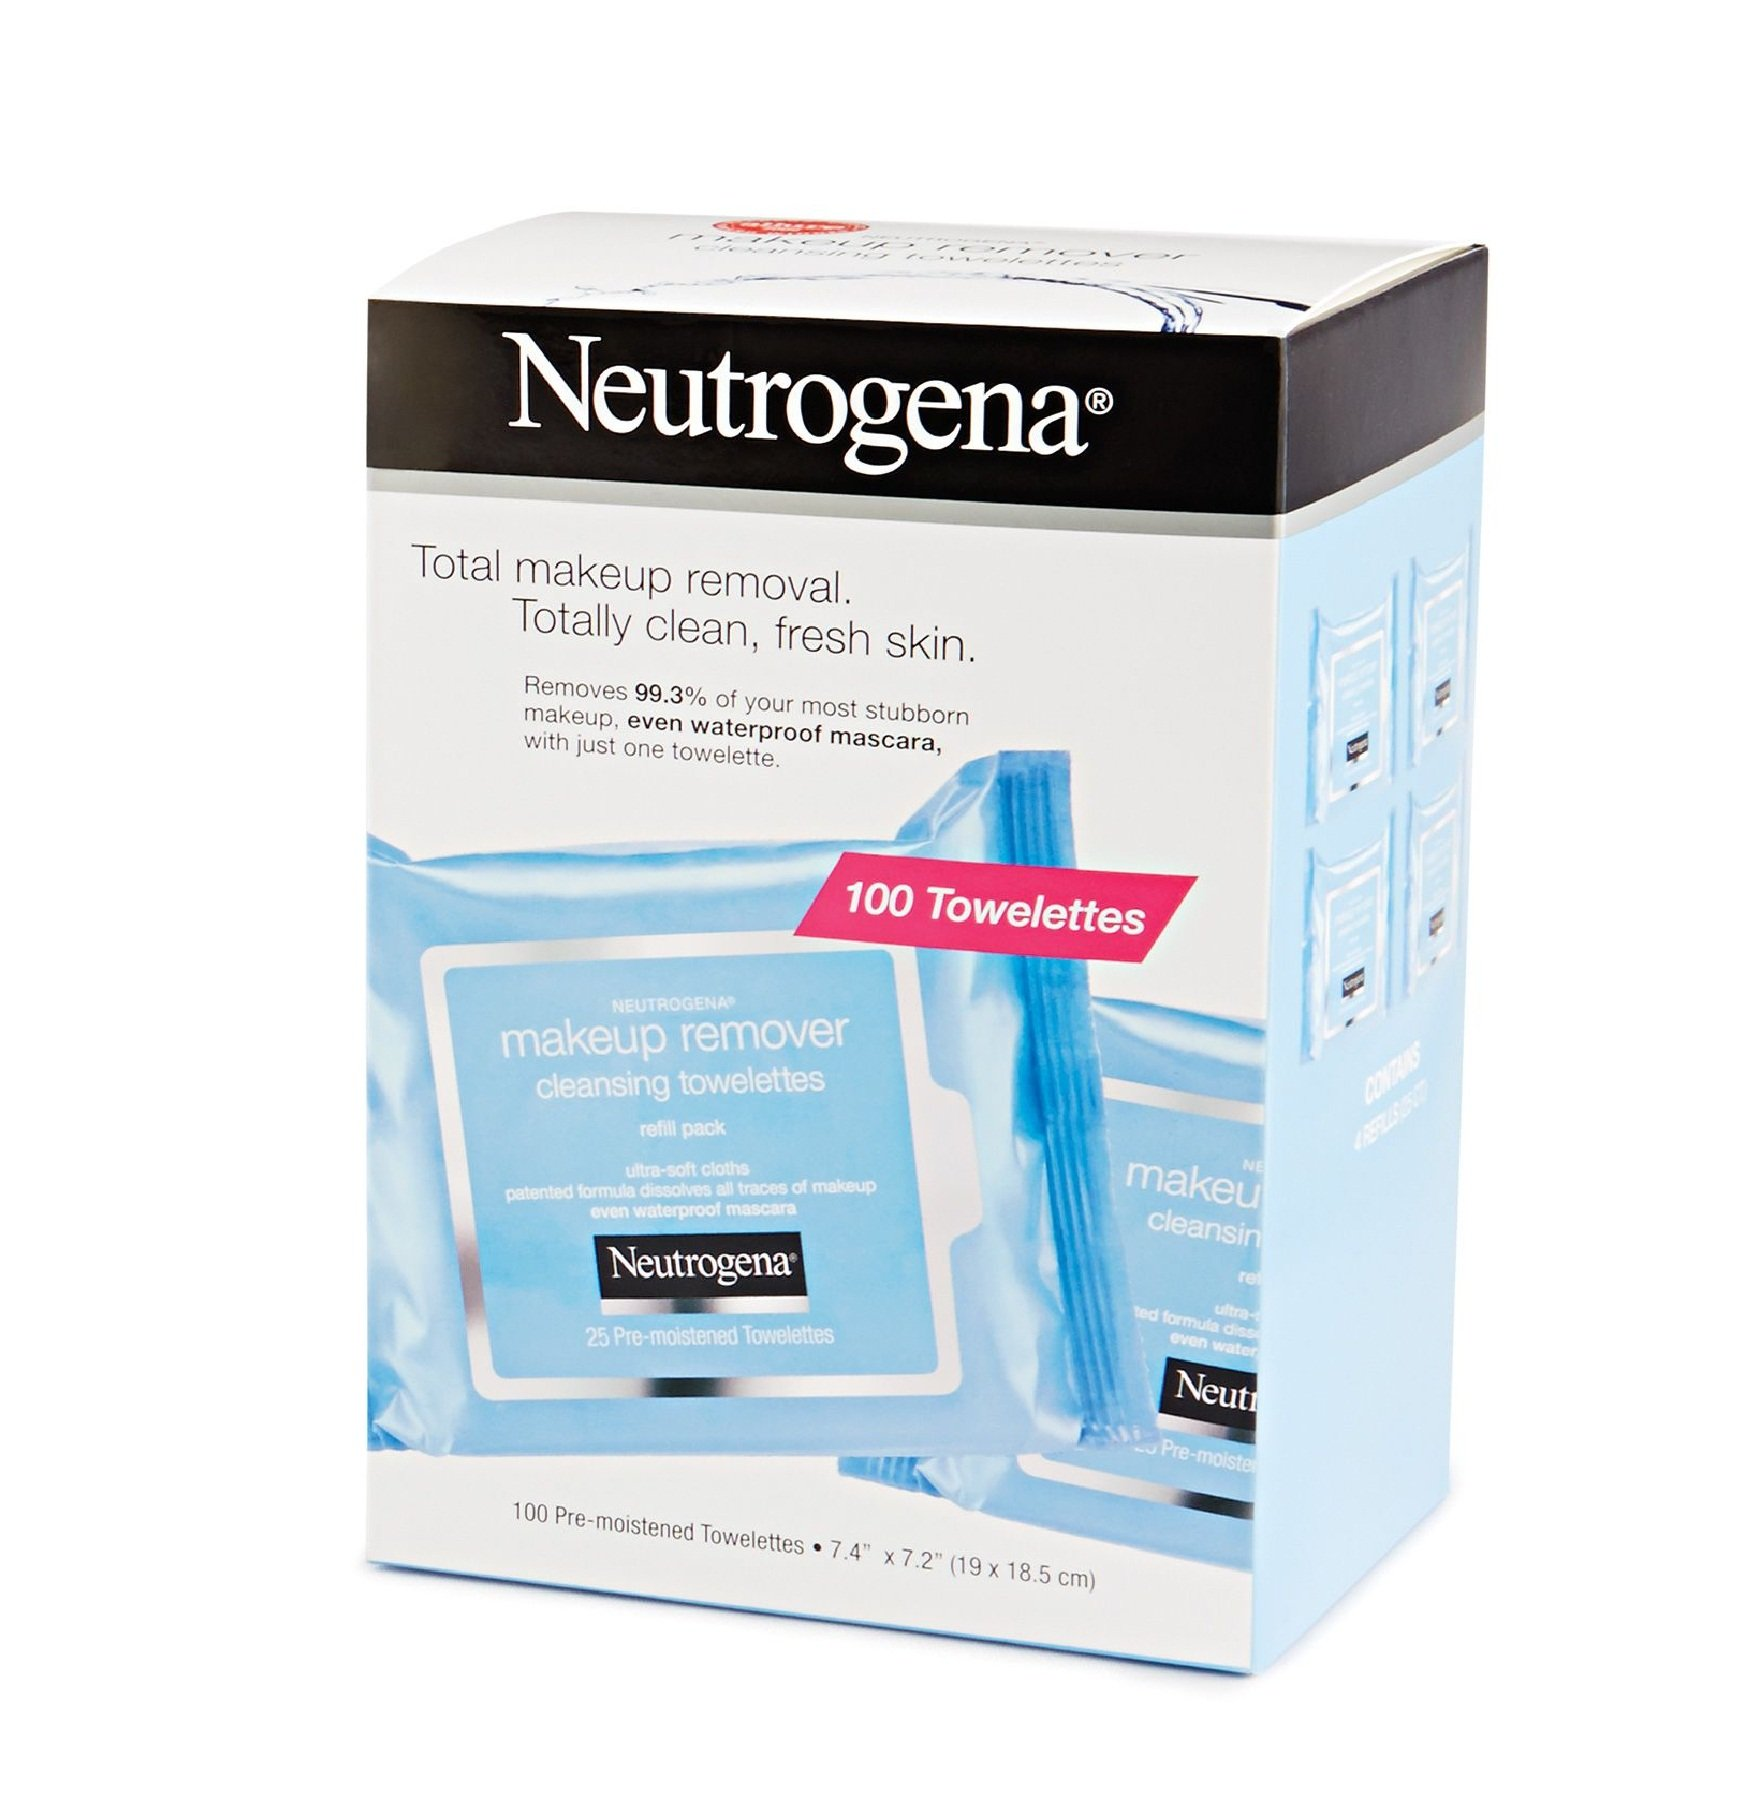 Neutrogena Make Up Removing Wipes, 100 Cleansing Towelettes product image